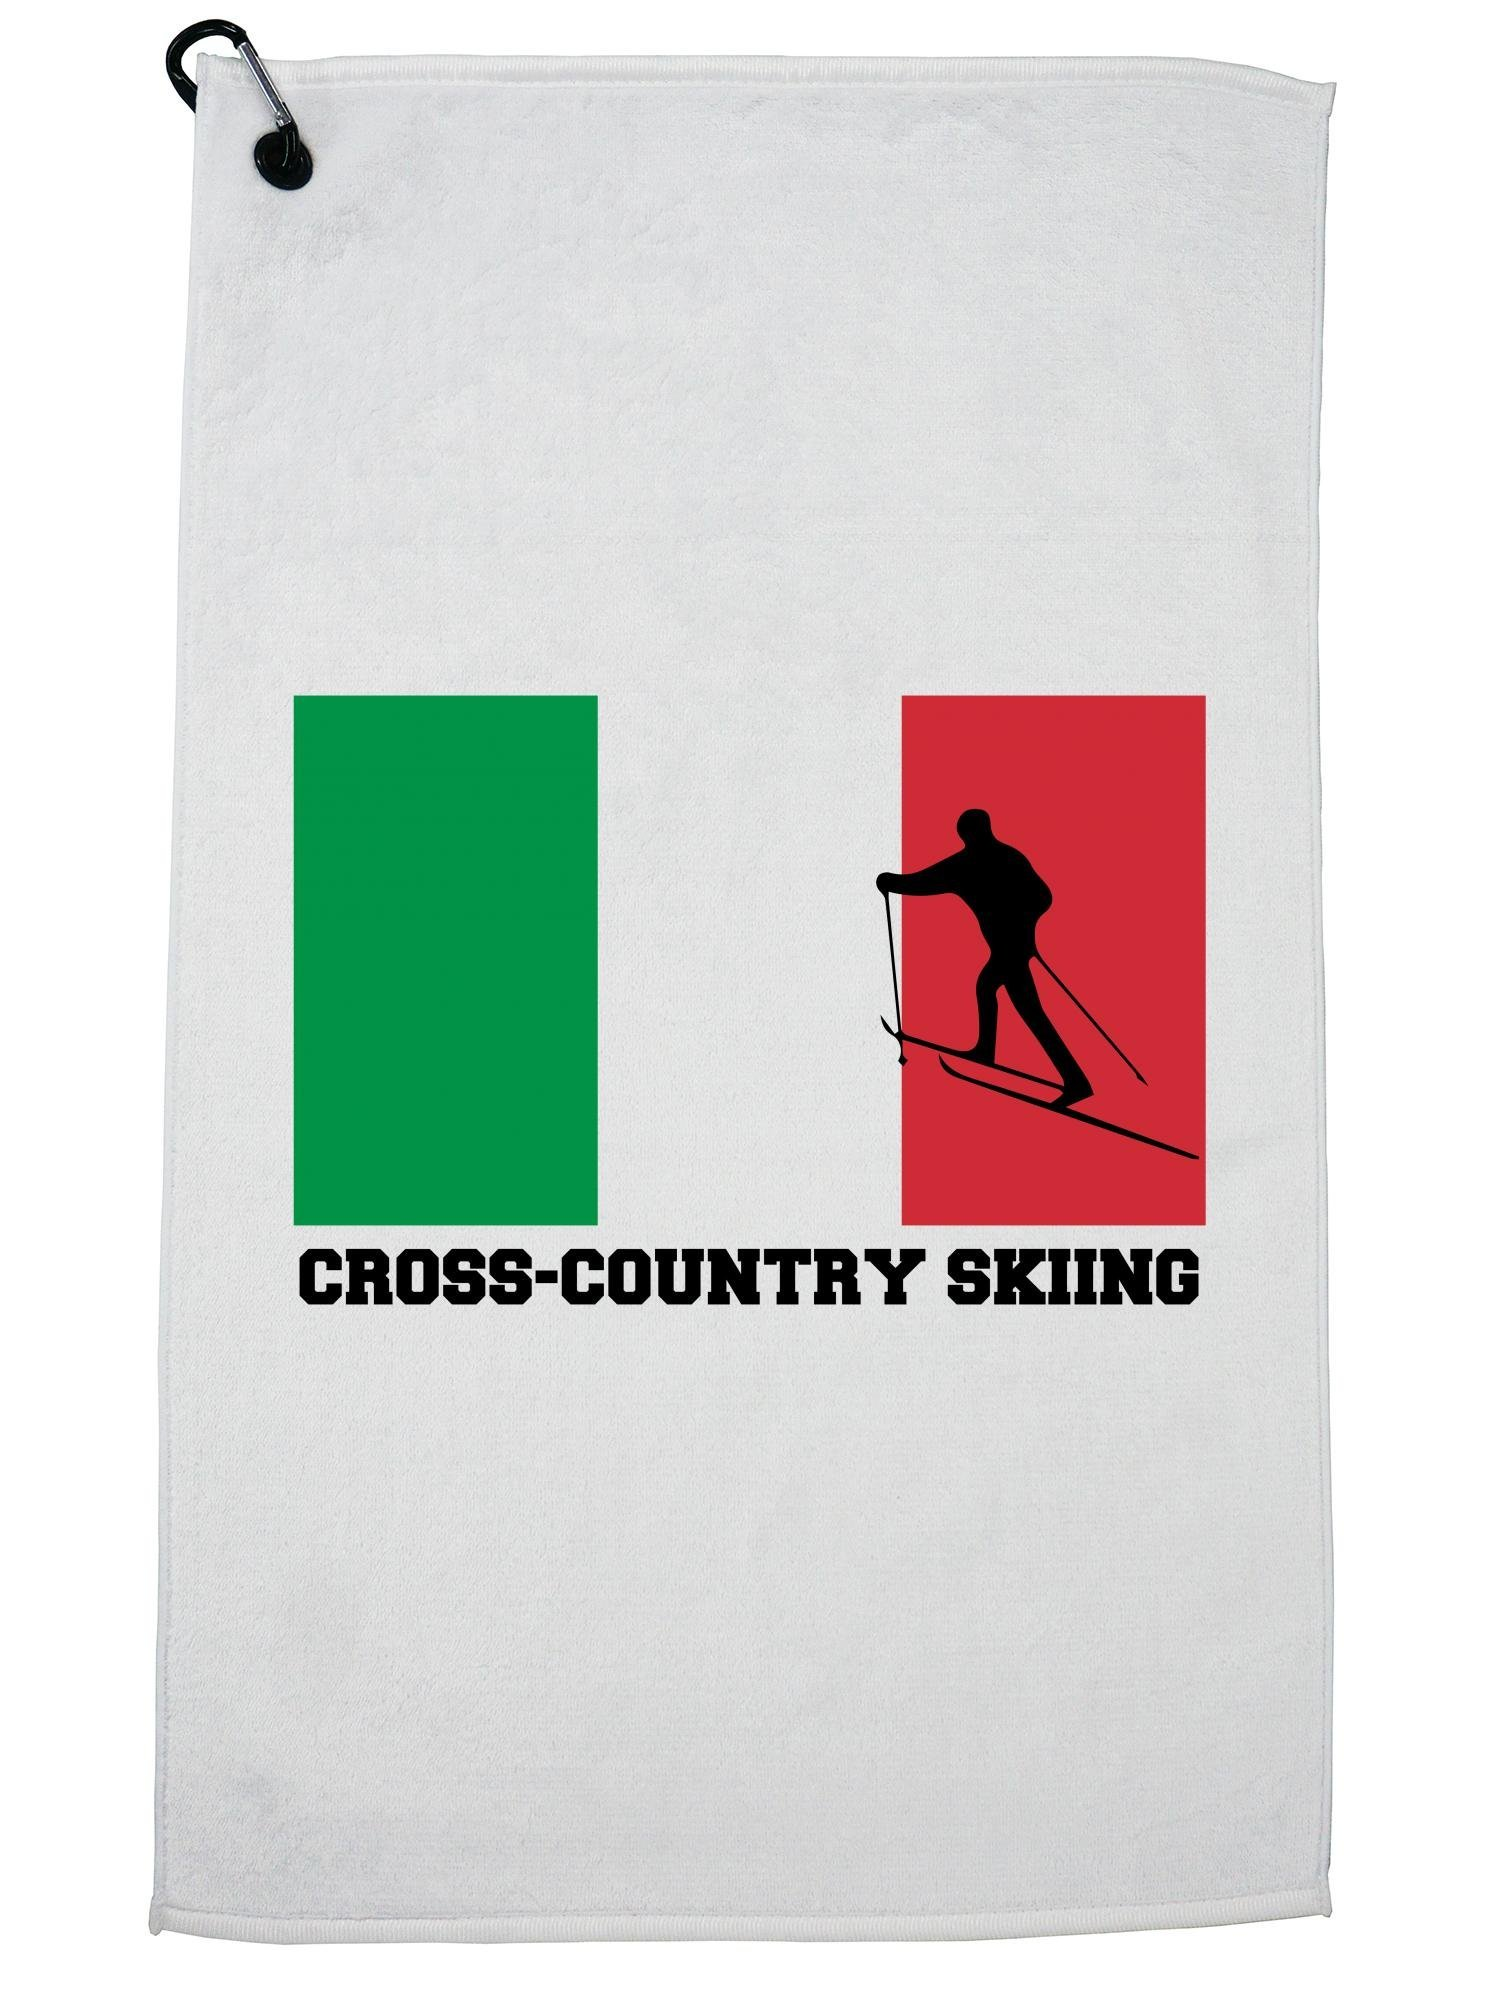 Hollywood Thread Italy Olympic - Cross-Country Skiing - Flag - Silhouette Golf Towel with Carabiner Clip